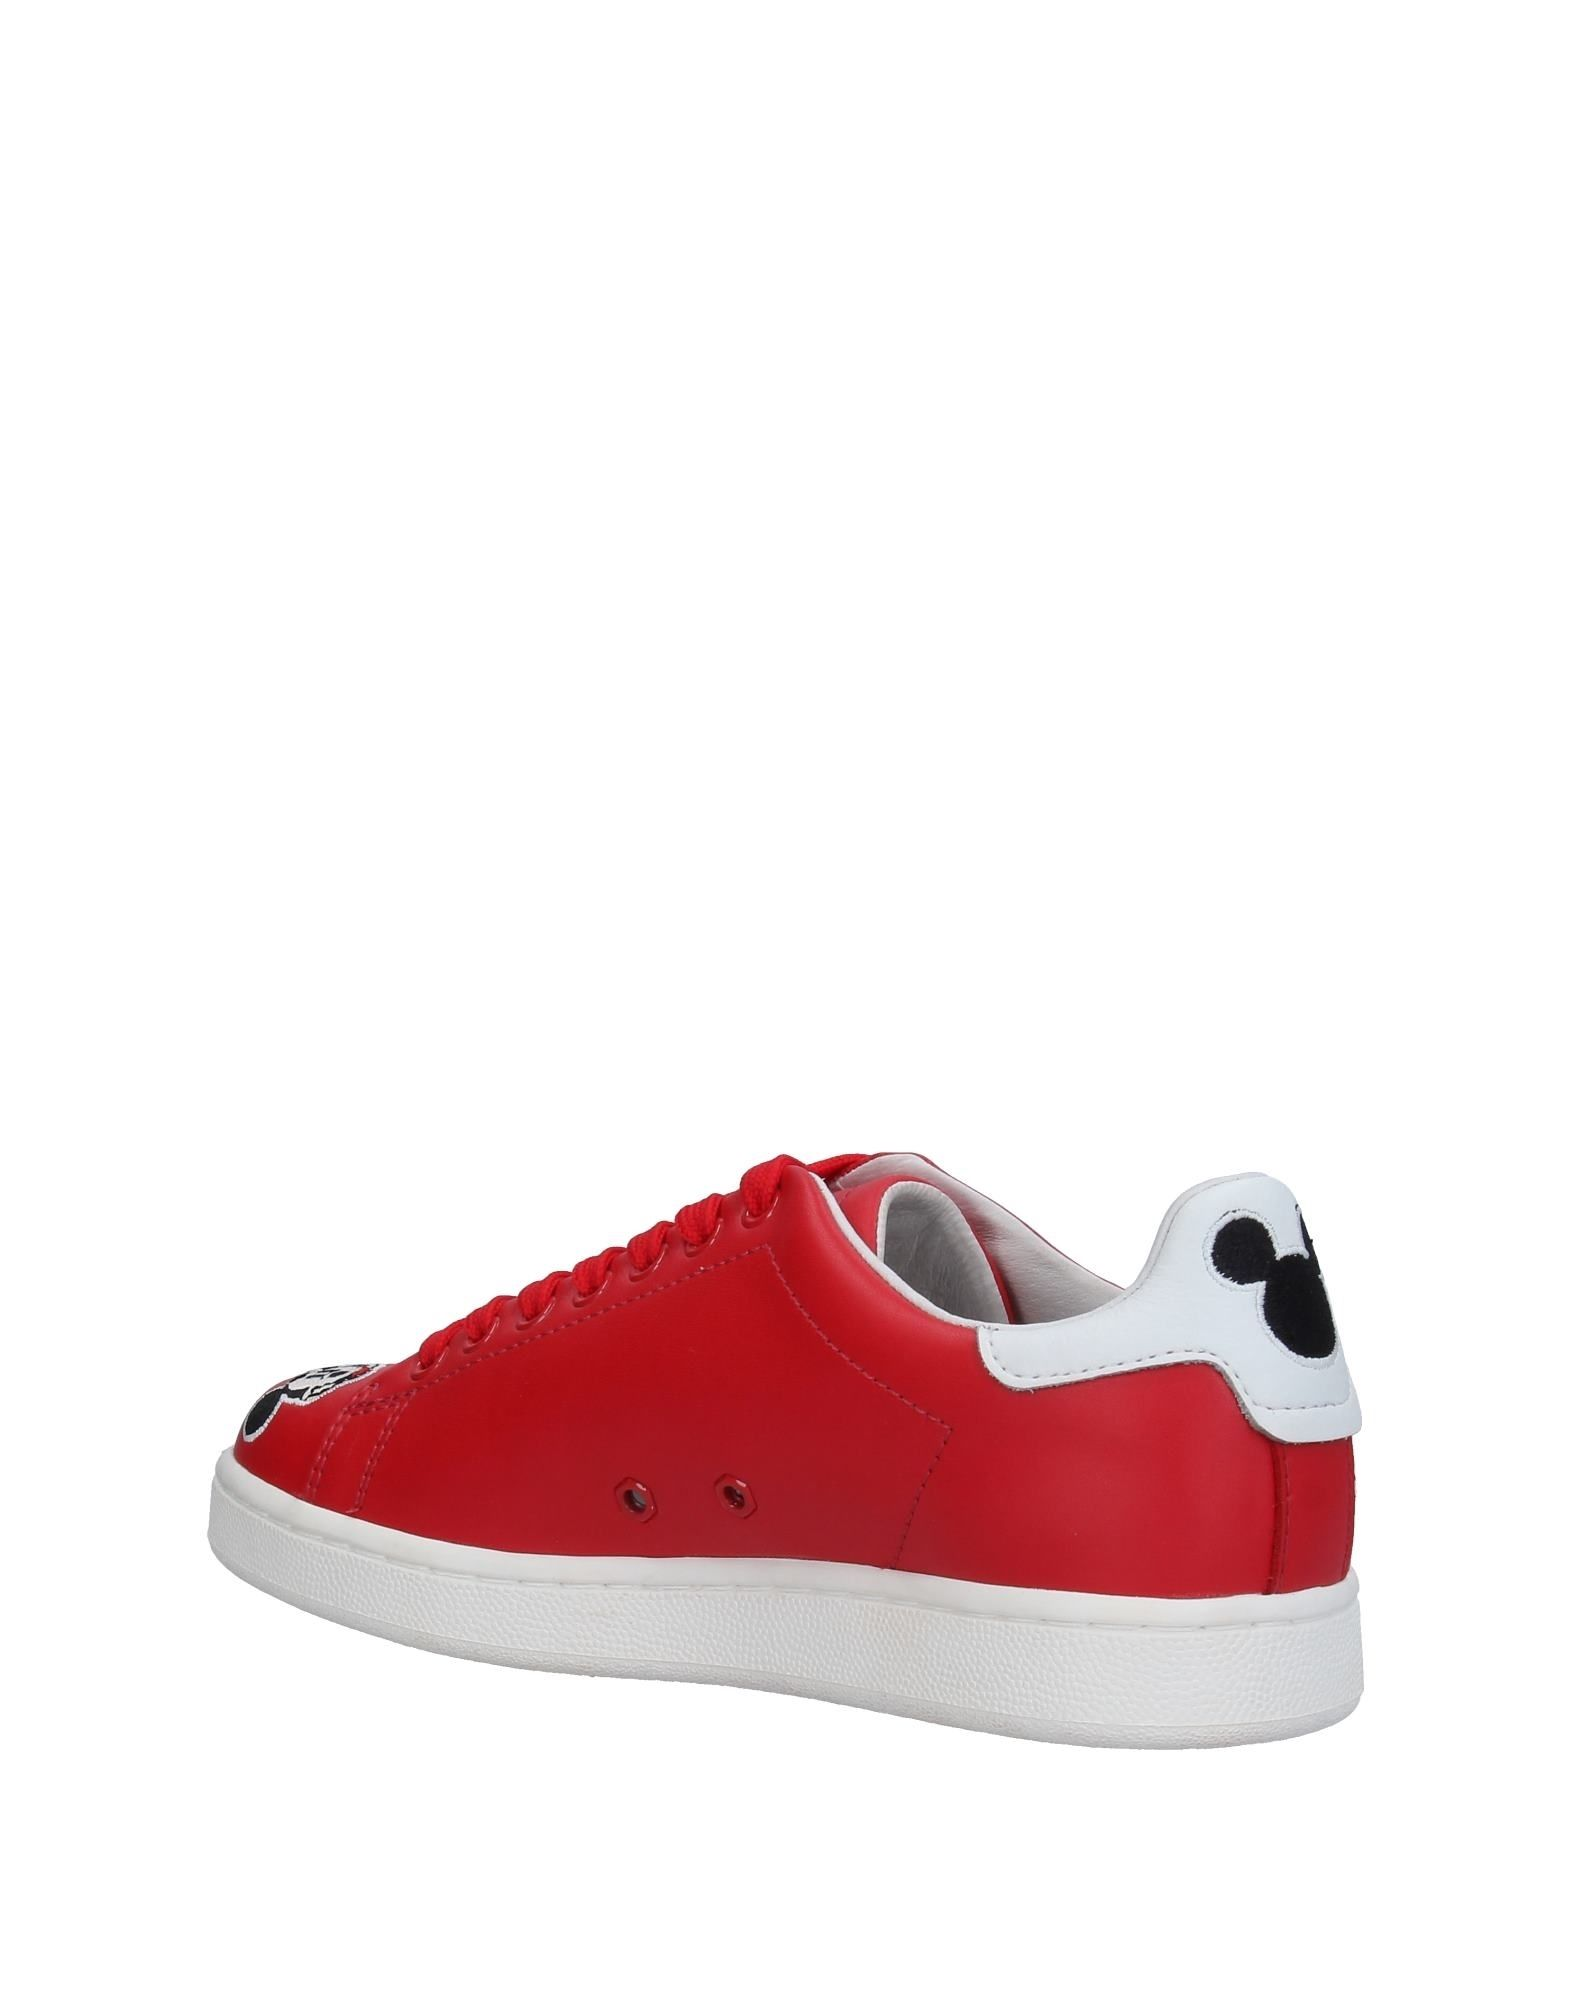 Moa Master Of Arts Sneakers Sneakers Sneakers - Women Moa Master Of Arts Sneakers online on  United Kingdom - 11340764EN f9b59c